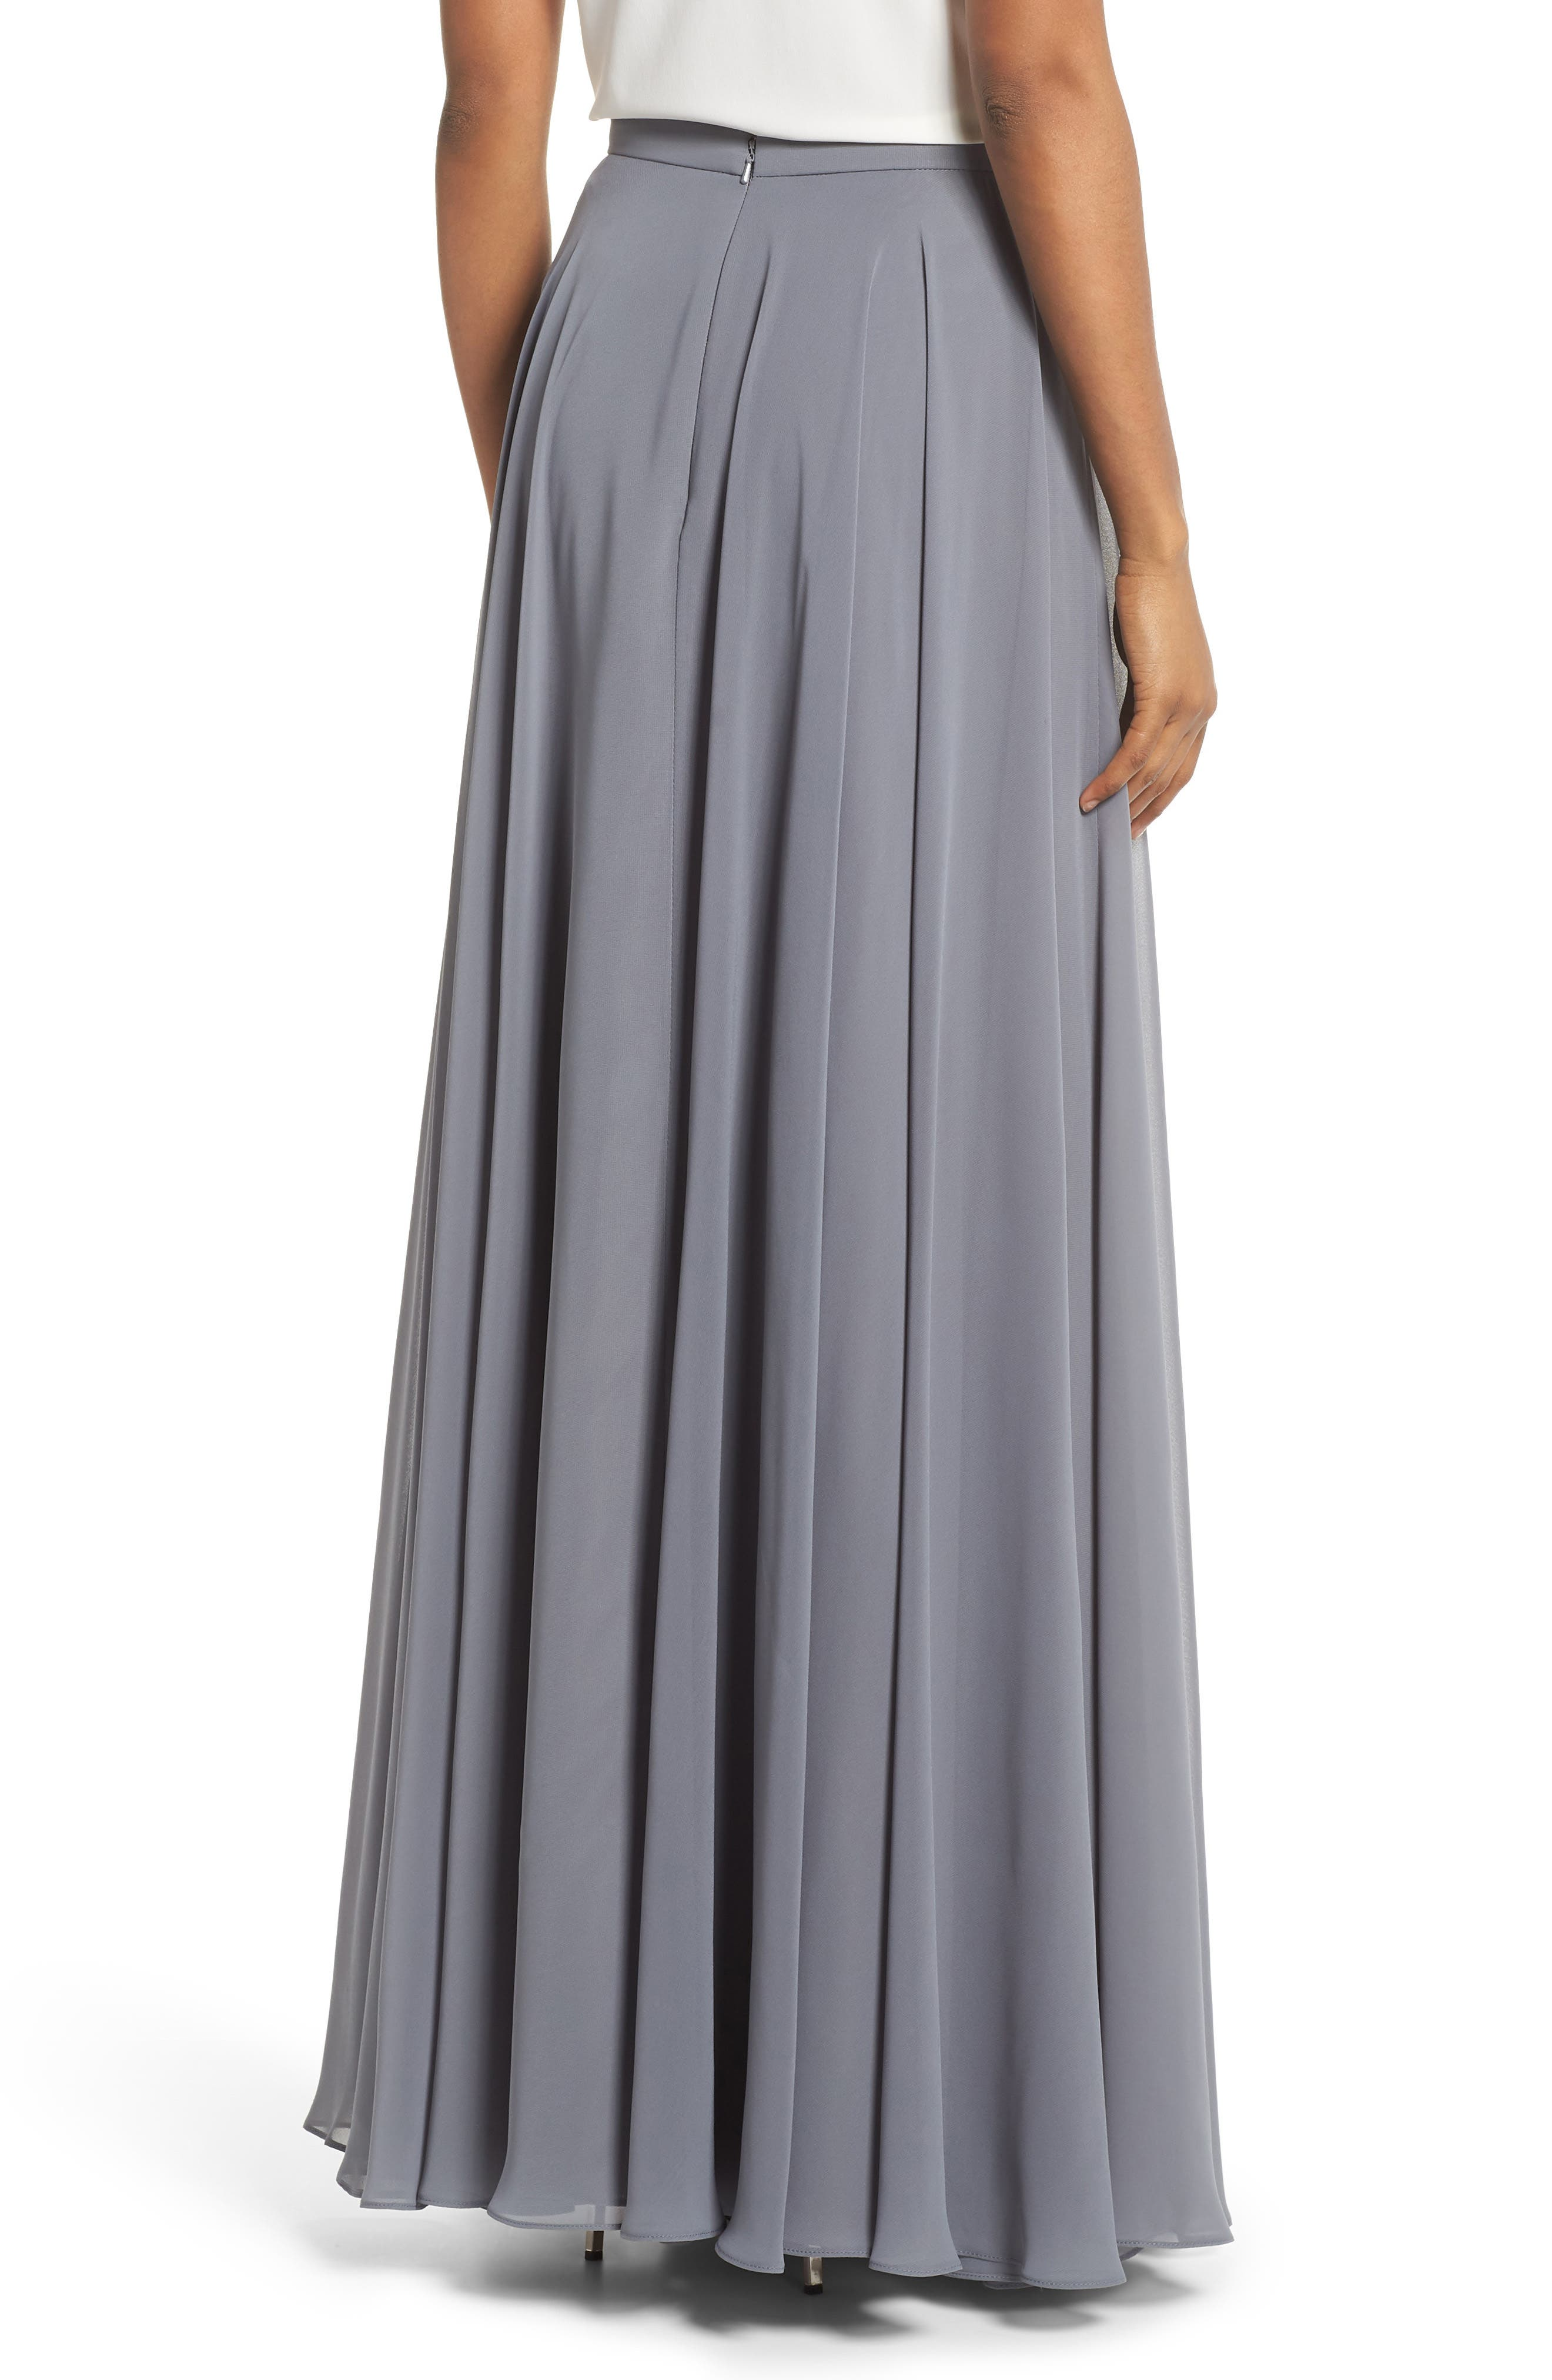 a skirt r knits floors apparel john skirts stjohnknits pencil nappa length shop gown stretch line bascavr floor leather st